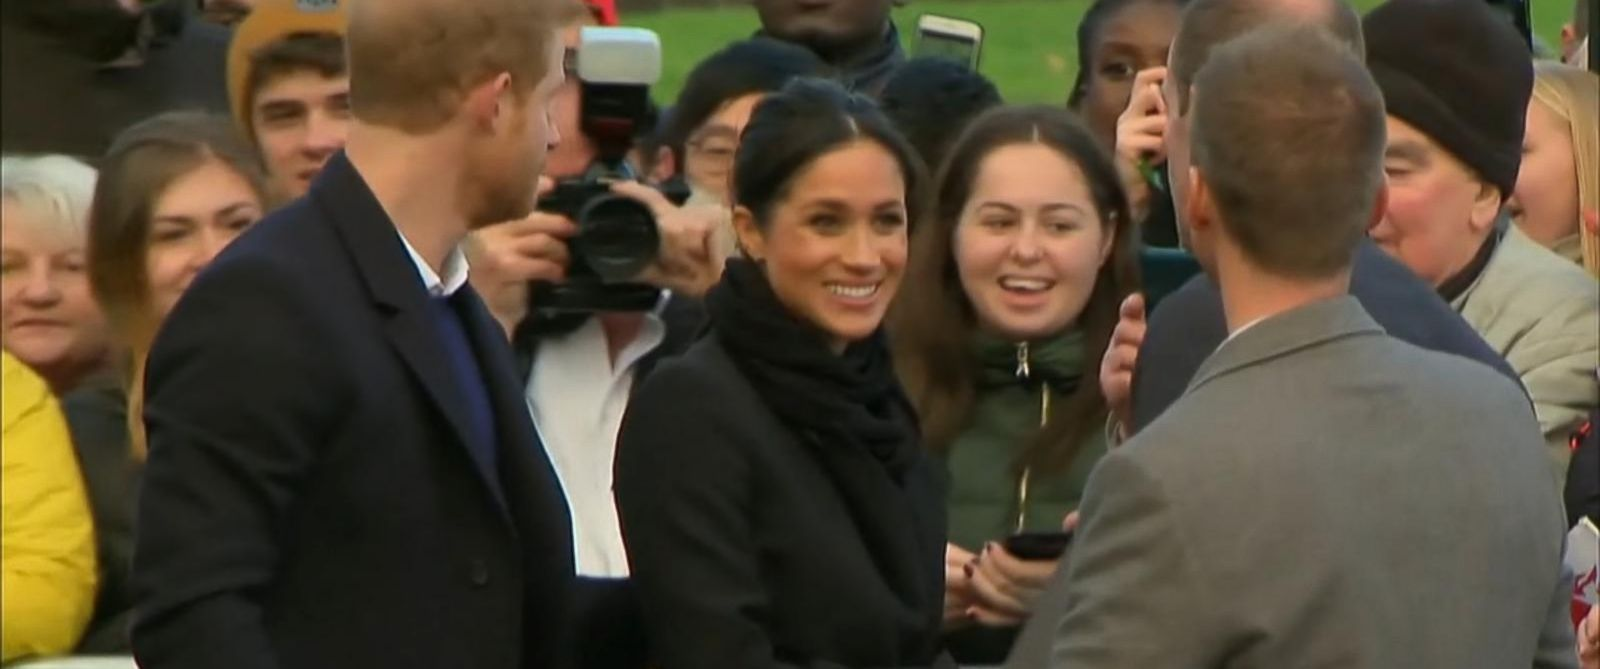 VIDEO: Harry, 33, and Markle, 36, were greeted by cheering fans at Cardiff Castle in Wales.